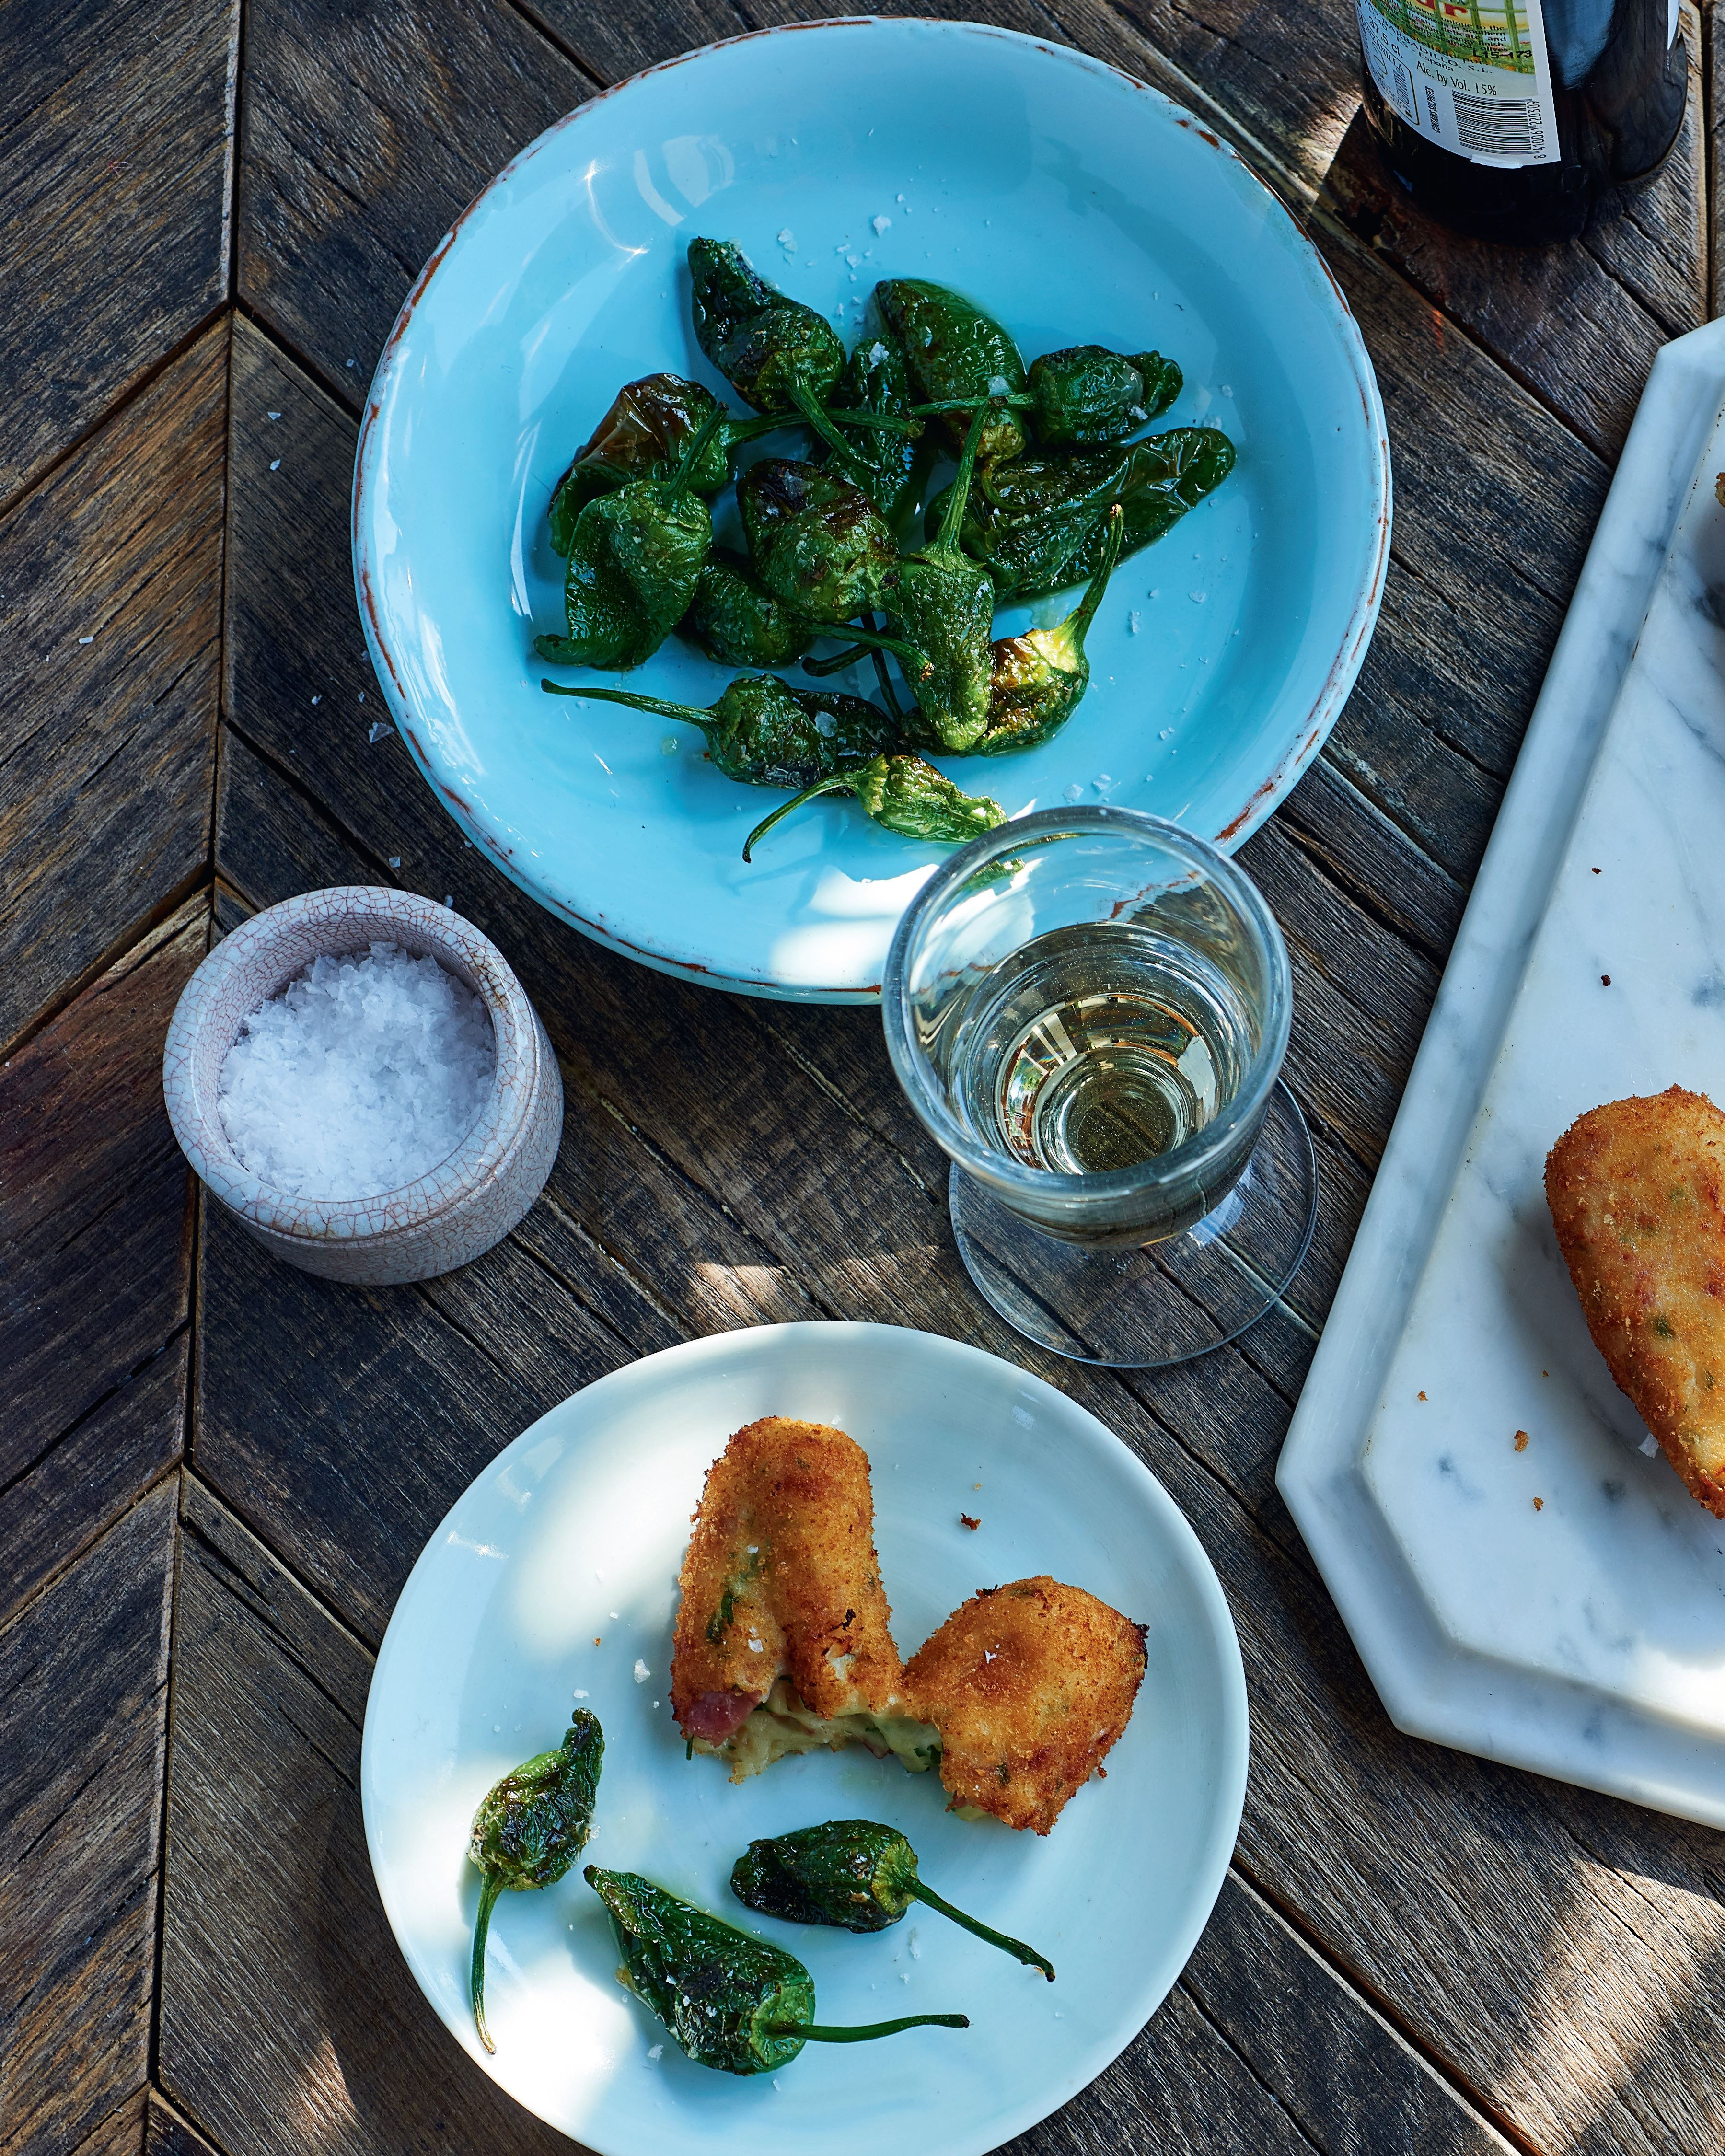 Chicken and Serrano ham croquetas with Padrón peppers